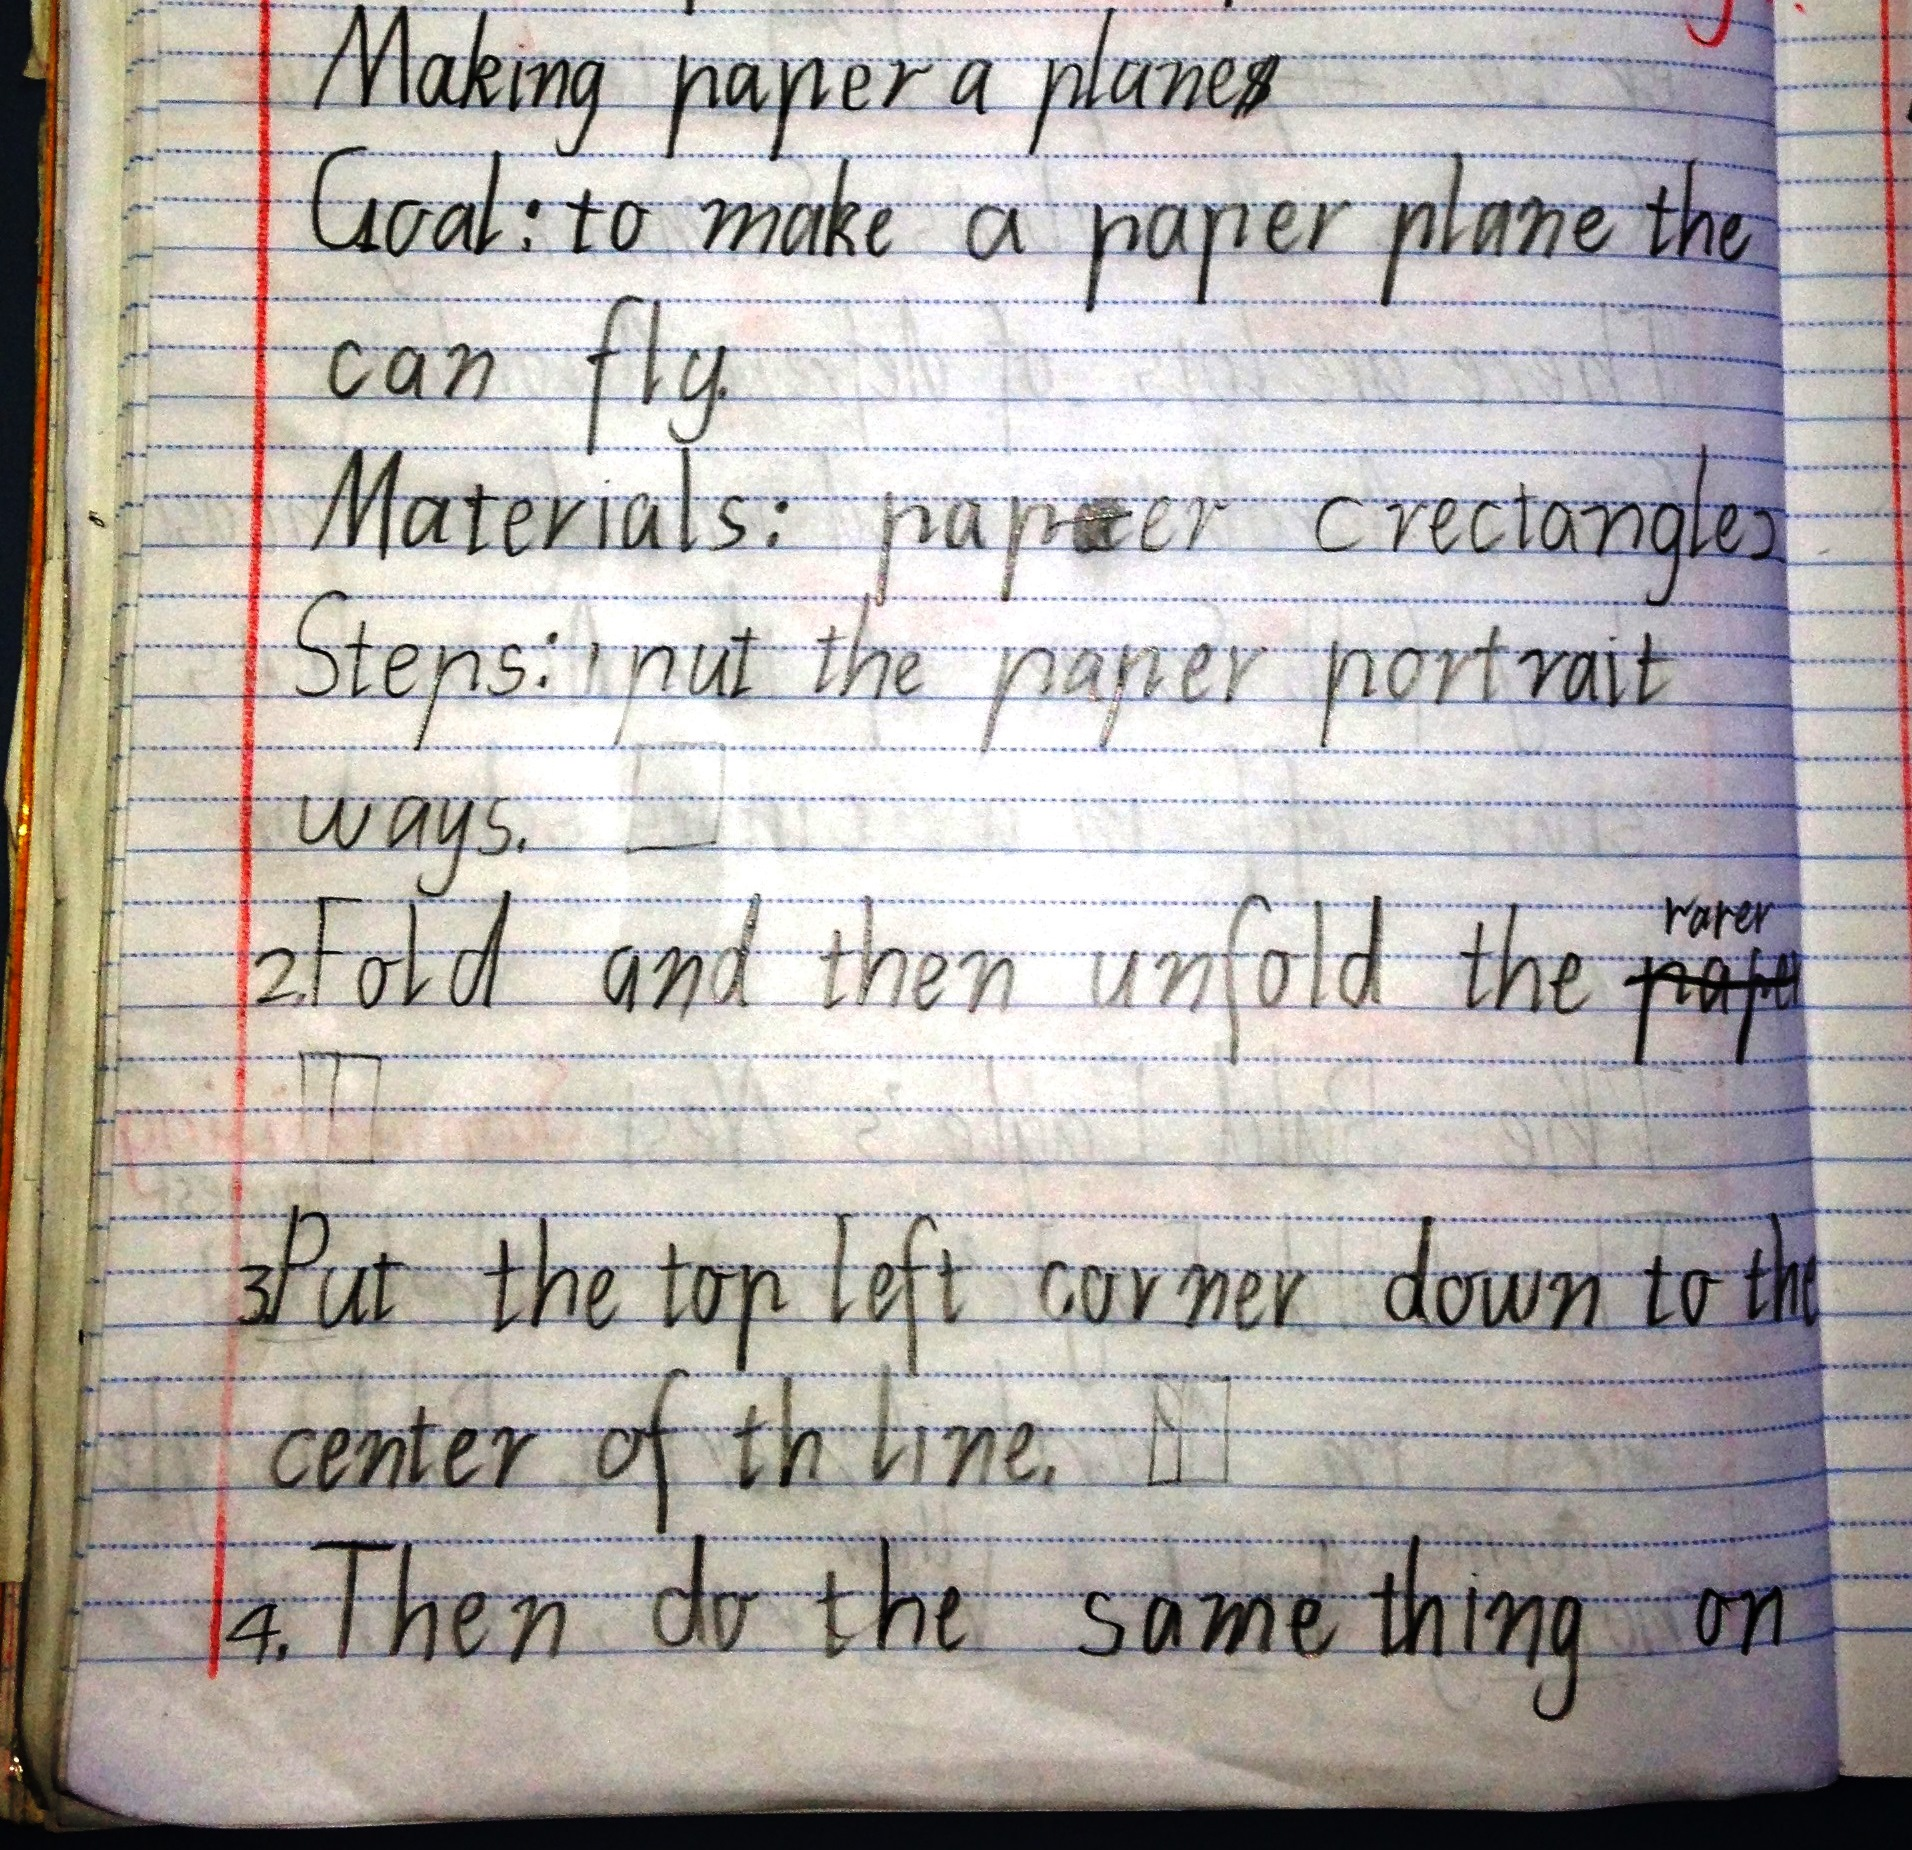 Procedural Text The Fun Genre How To Make A Paper Plane